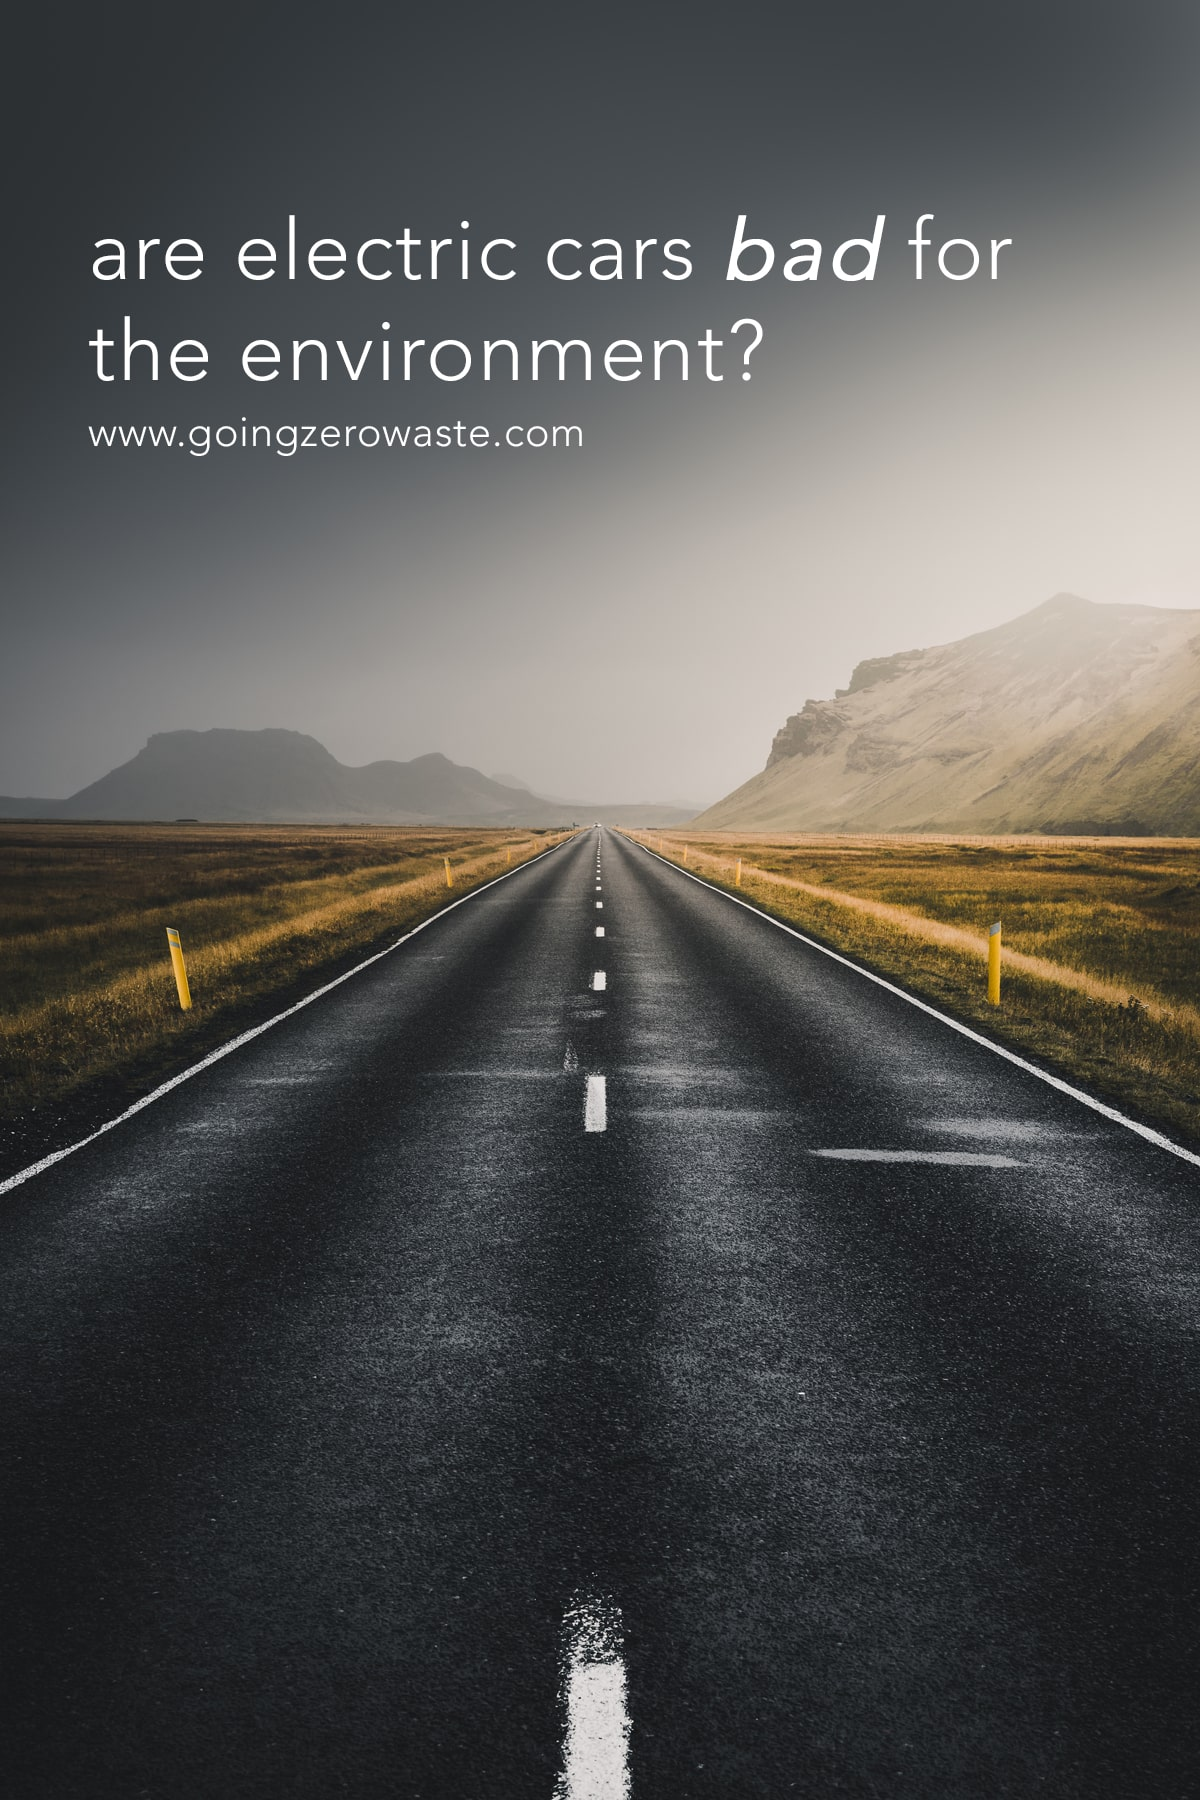 Are Electric Cars Bad for the Environment?